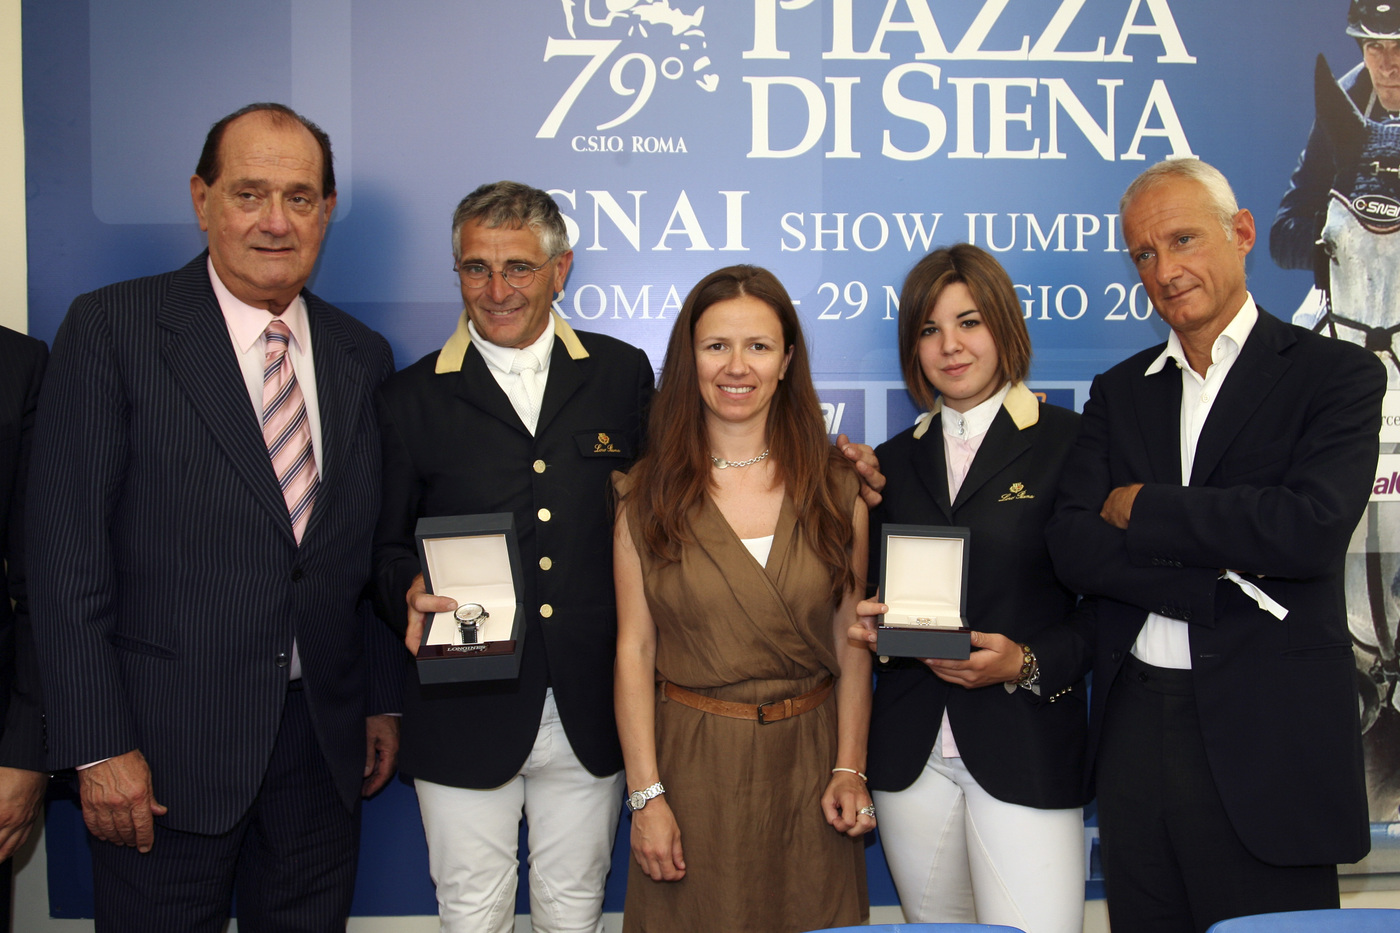 Longines Show Jumping Event: Longines and the 79th CSIO Piazza di Siena (Italy) : Elegance and precision in Rome among celebrities and horse-goers 2